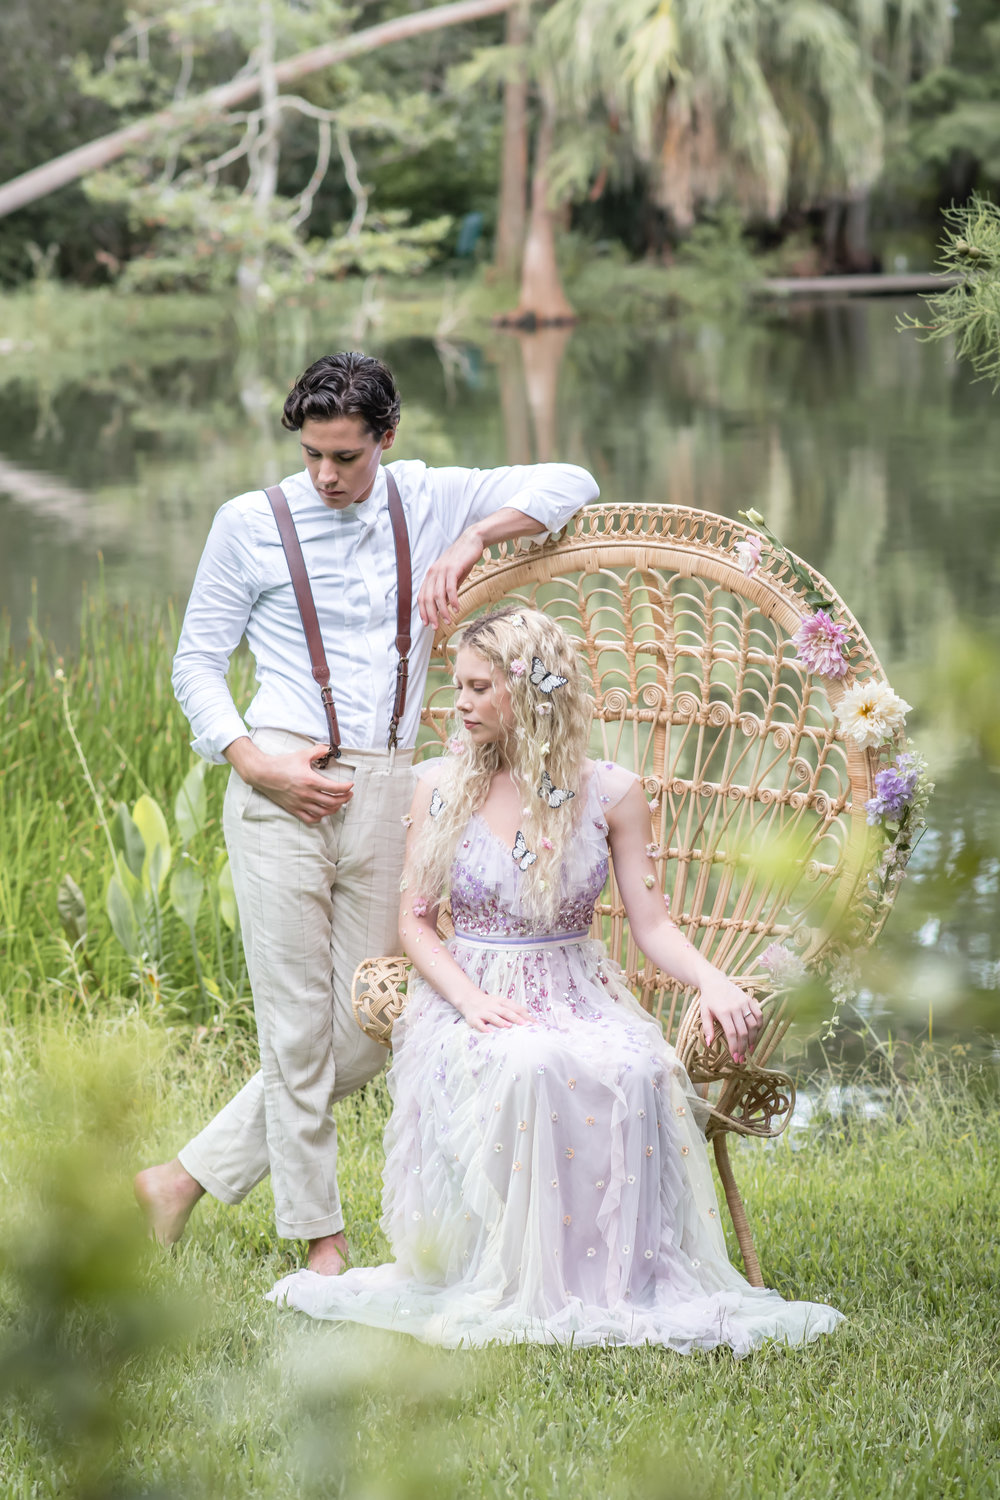 mead-botanical-garden-bridal-inspiration-photos-with-flowers-and-bubbles-orlando-photographer-yanitza-ninett-42.jpg